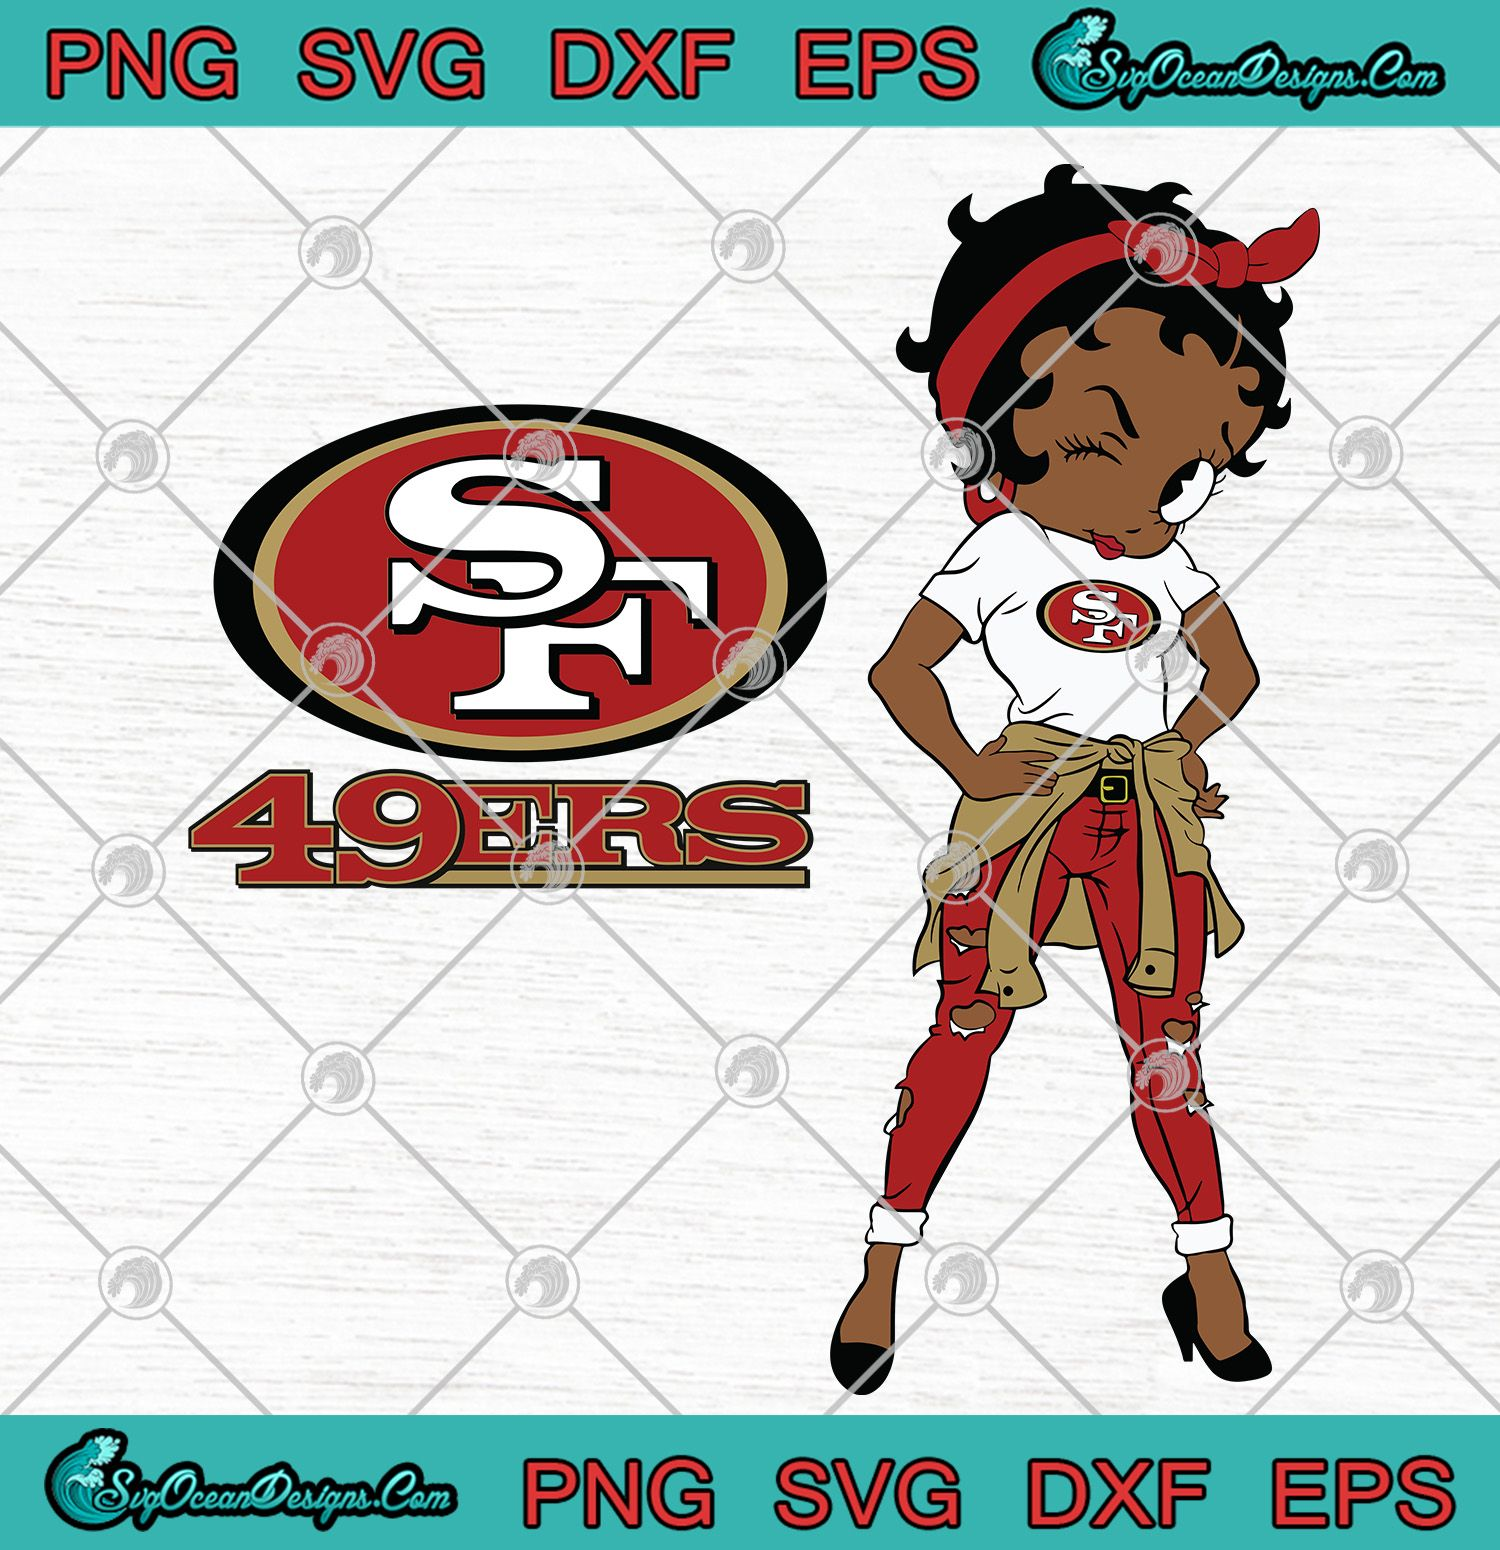 Betty Boop San Francisco 49ers Svg Png Eps Dxf San Francisco 49erss Svg Png In 2020 Betty Boop Cartoon Drawings San Francisco 49ers